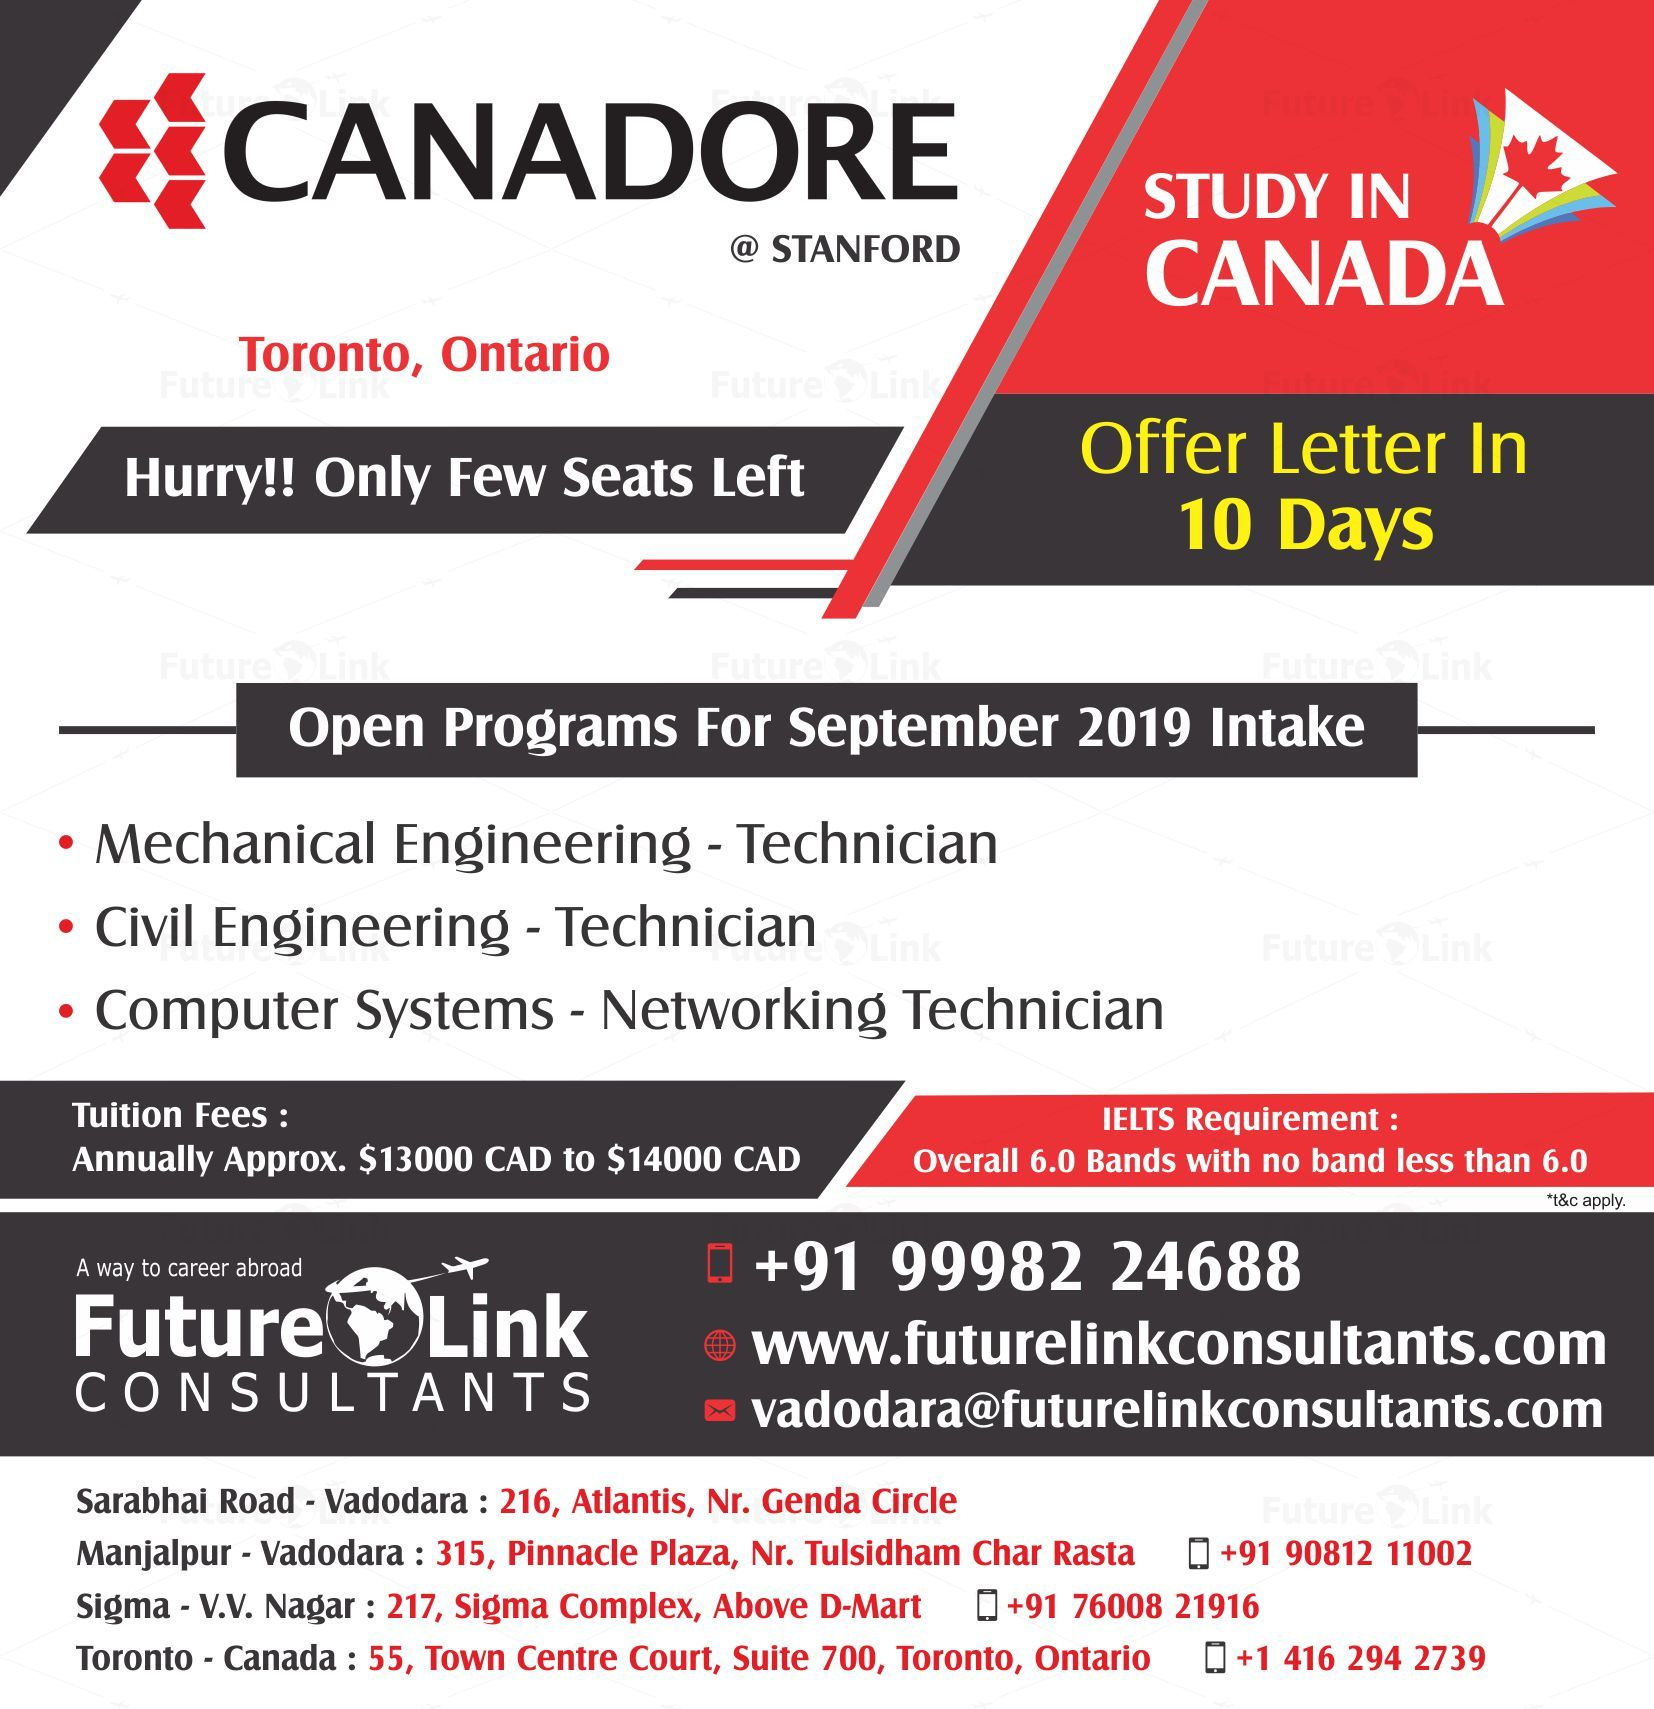 Do You Want To Study In Canada The Canadore College Toronto Ontario Canada Has All Your Career Oriented Ne Canada Toronto Mechanical Engineering Technician